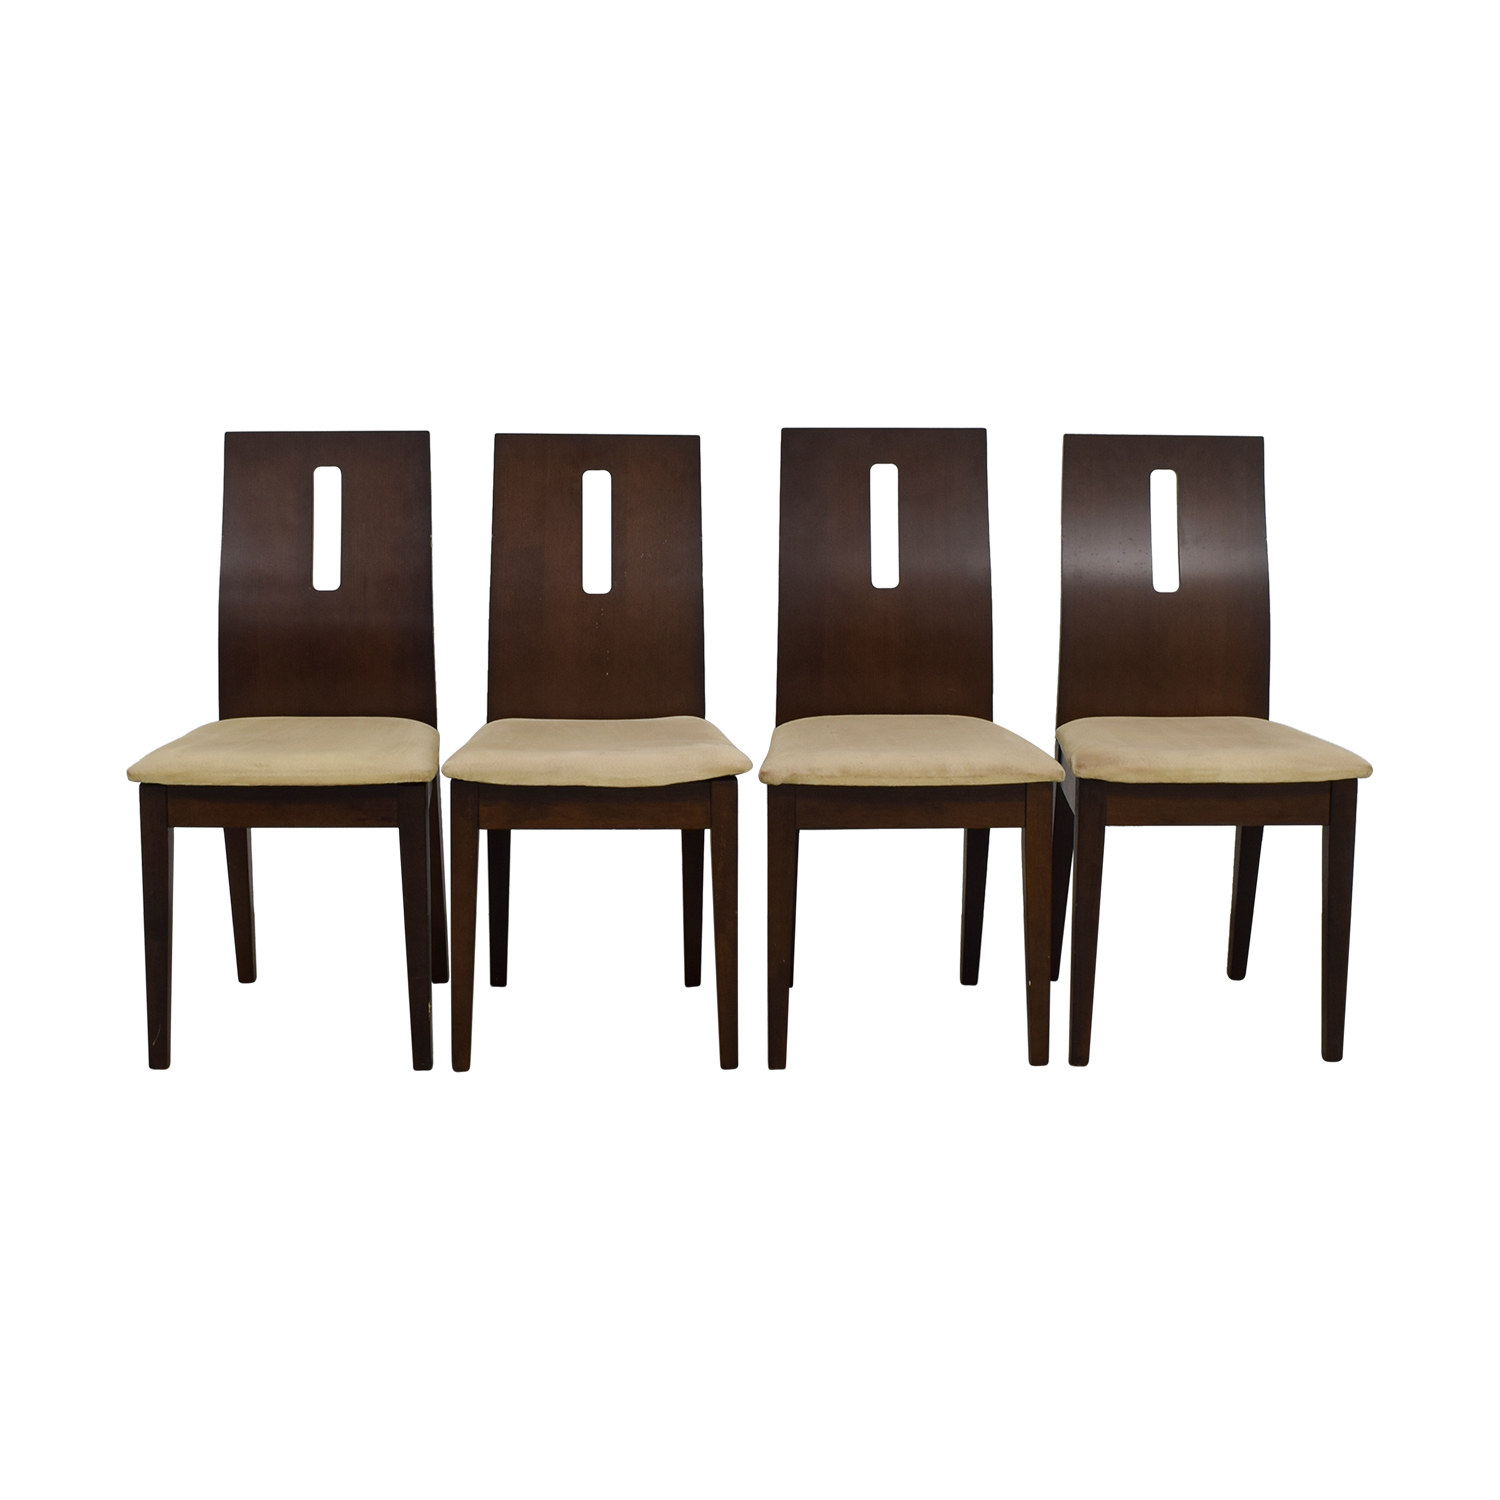 Wood and Beige Upholstered Dining Chairs dimensions